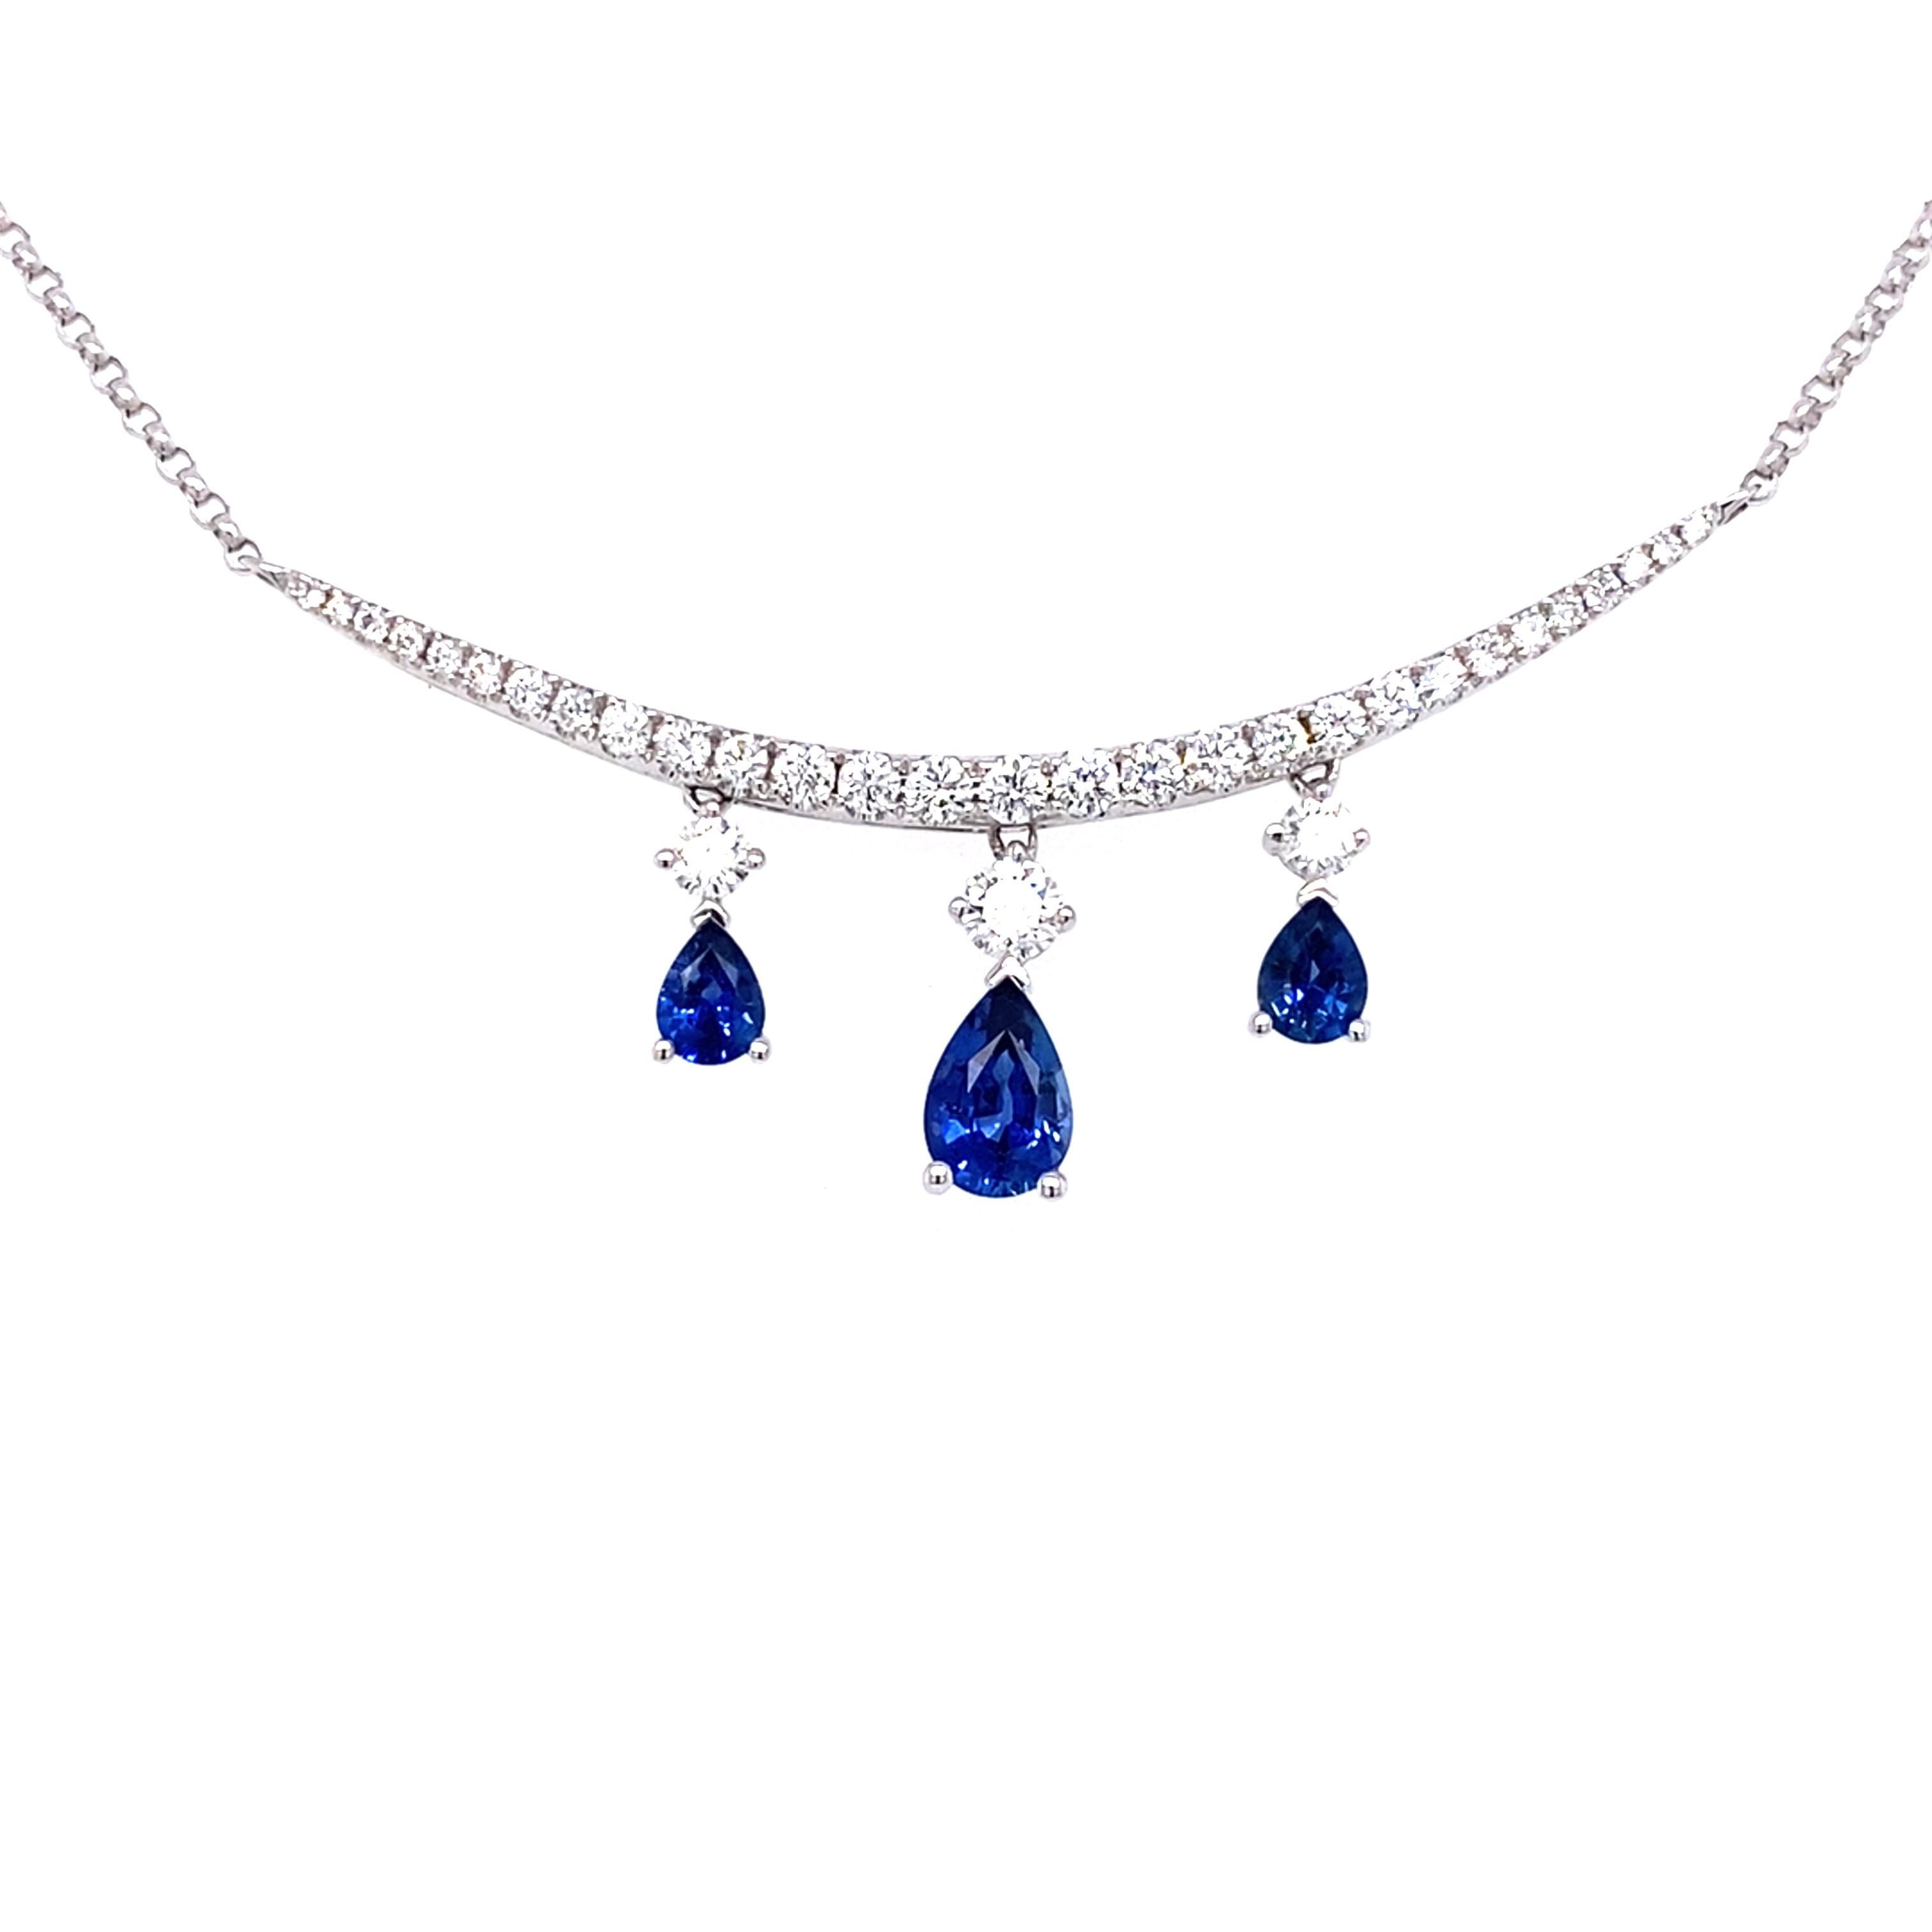 18ct White Gold Diamond and Sapphire Necklet